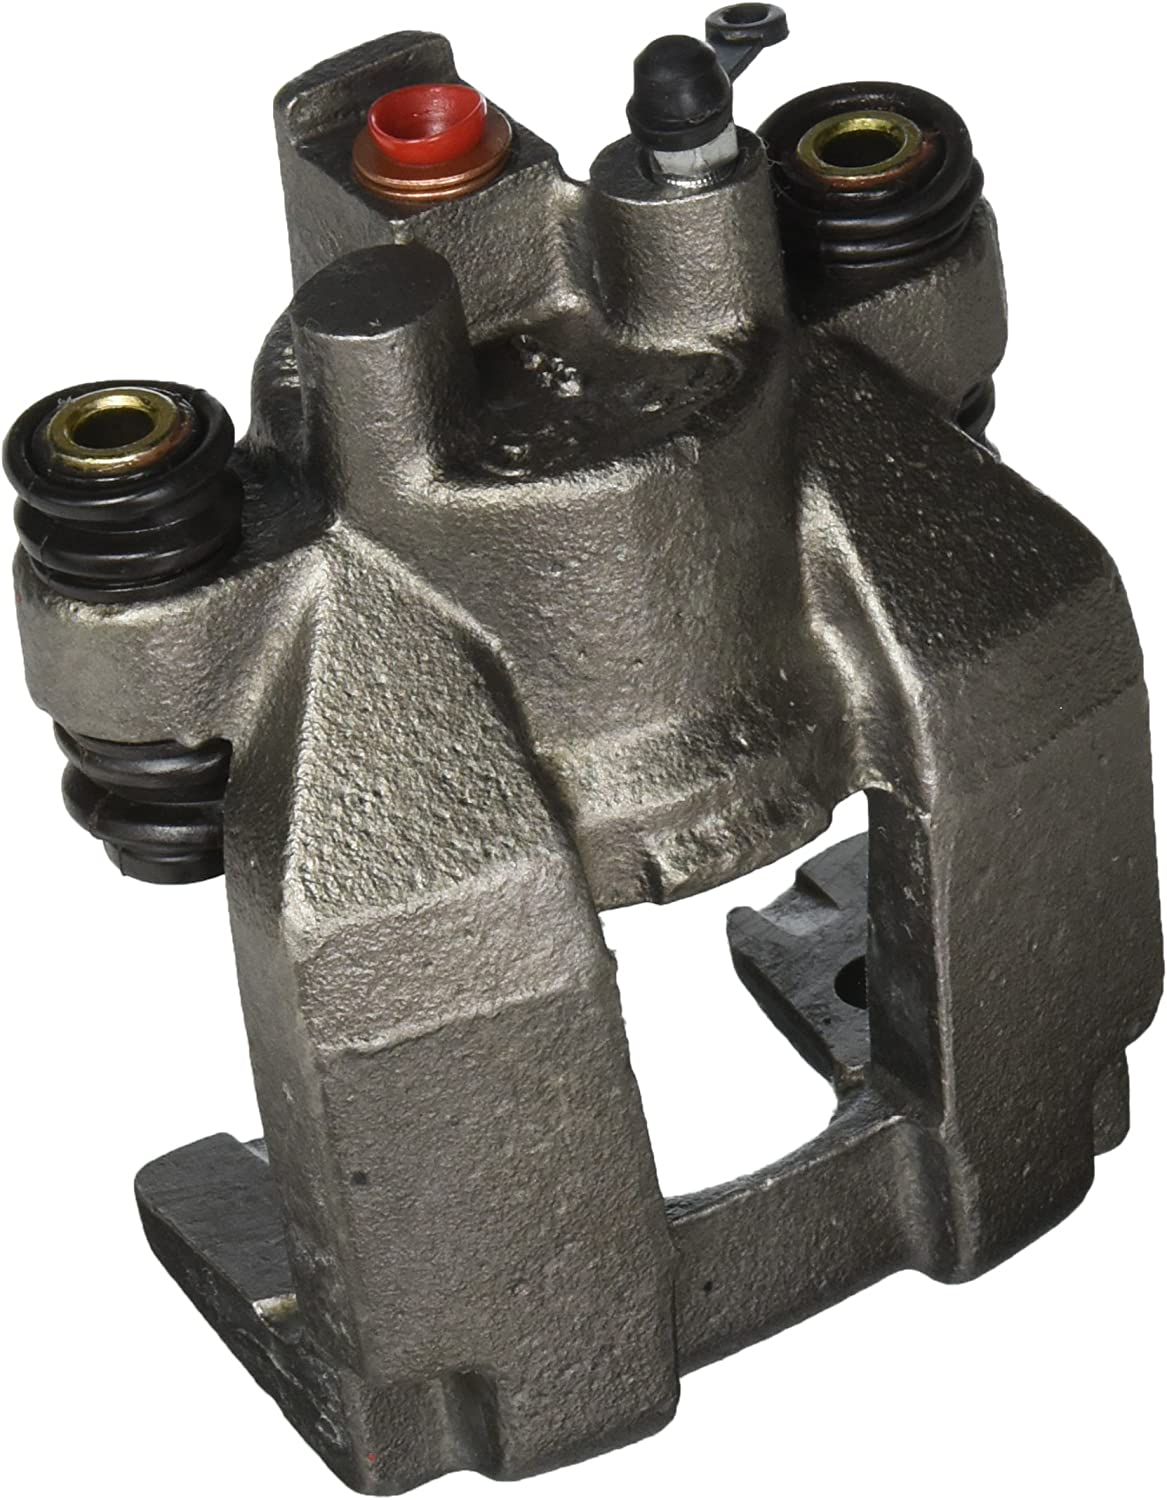 Power Stop L4604 Autospecialty Remanufactured Caliper